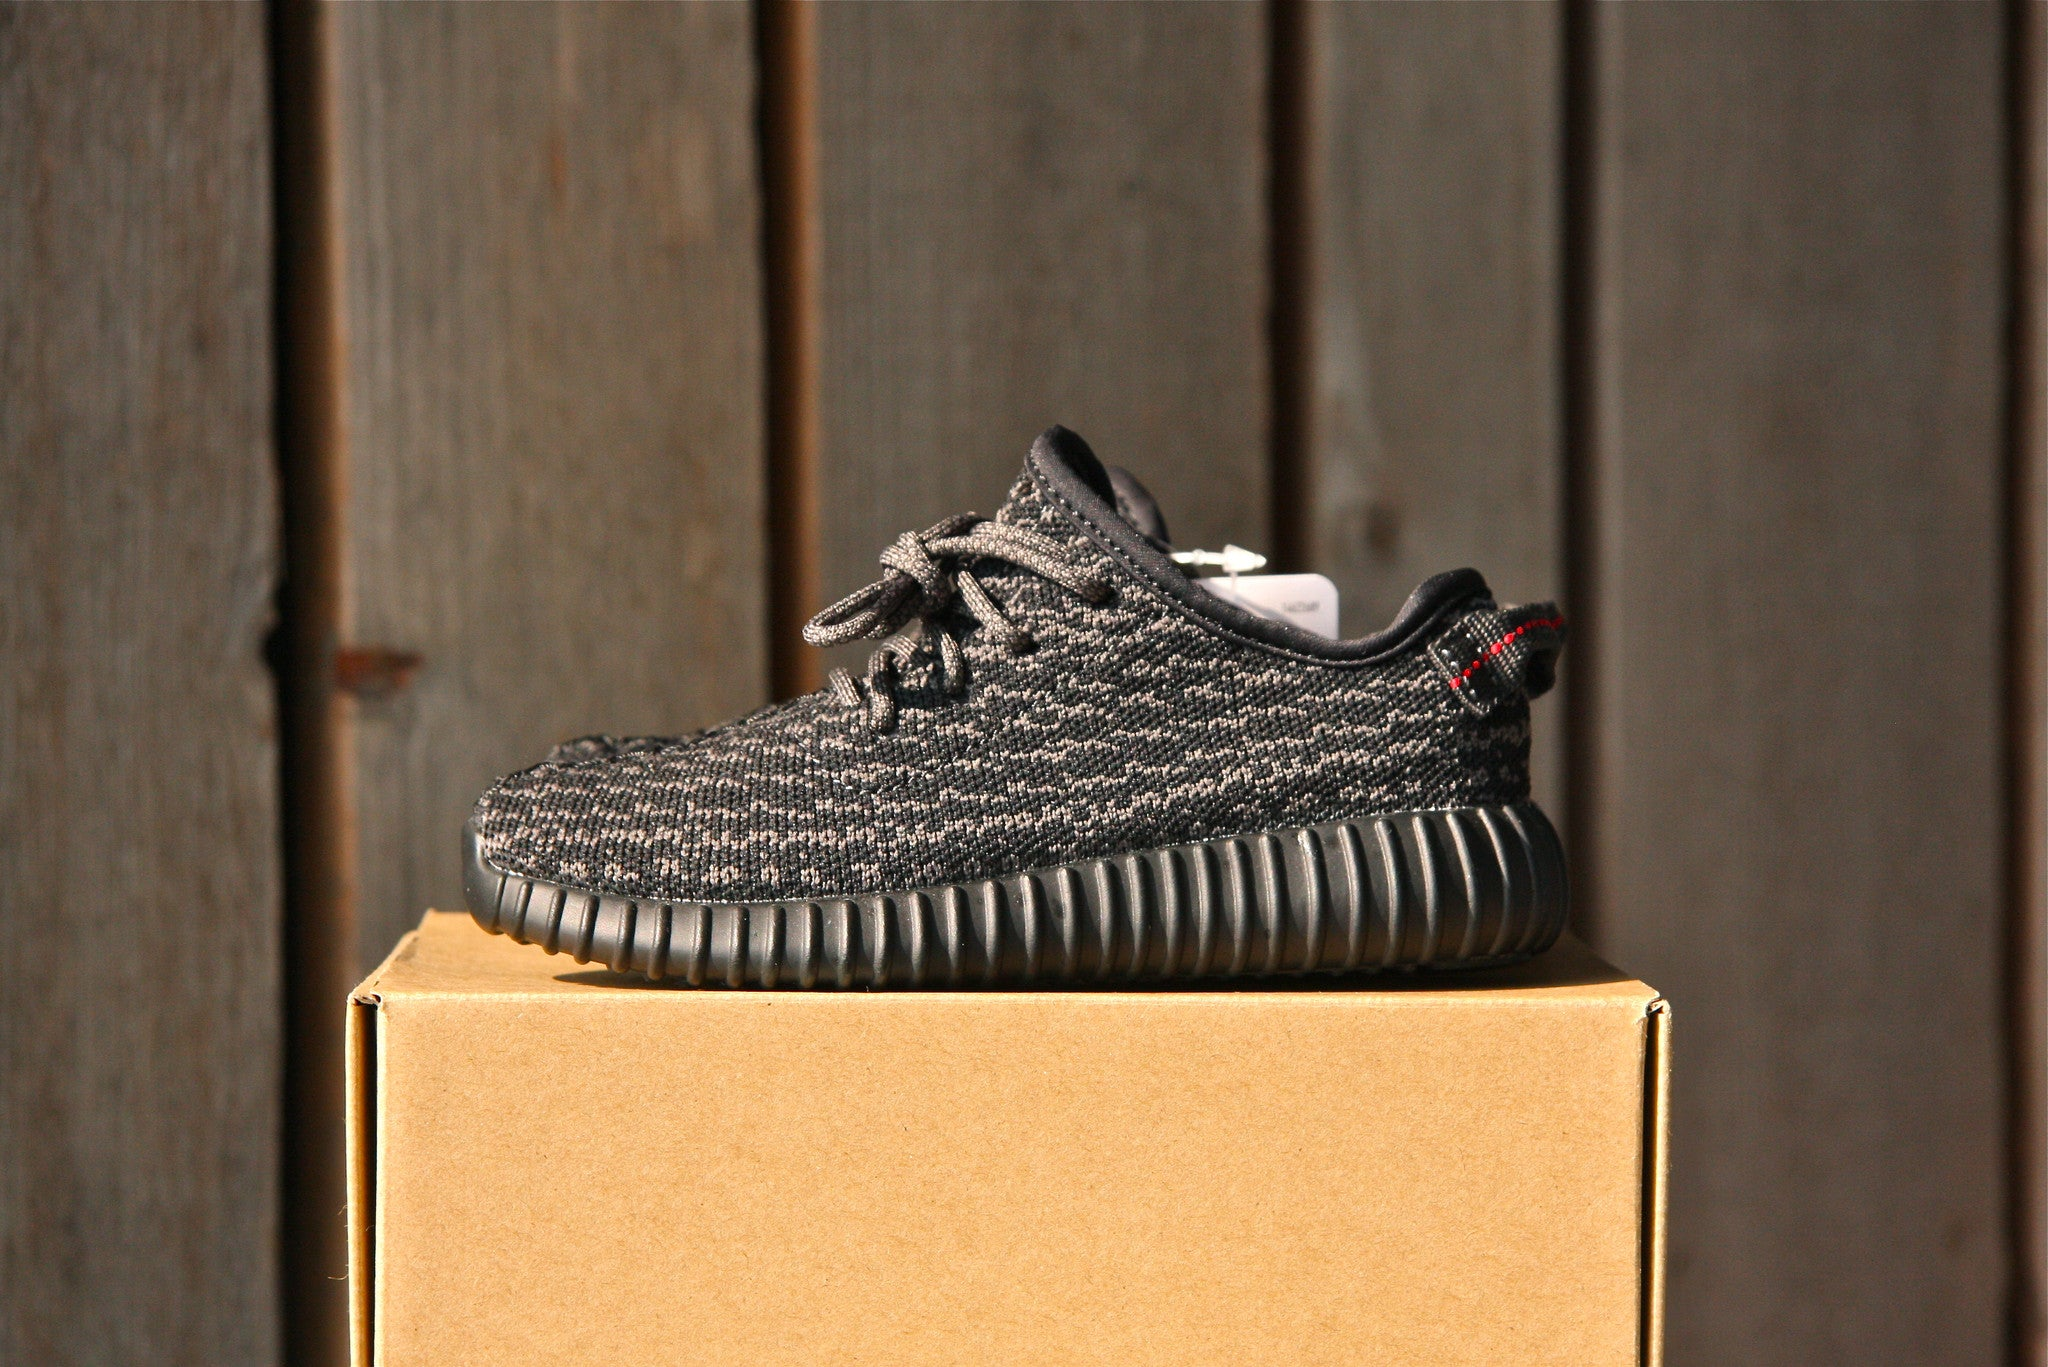 Adidas Infant Yeezy Boost 350 (Pirate Black)